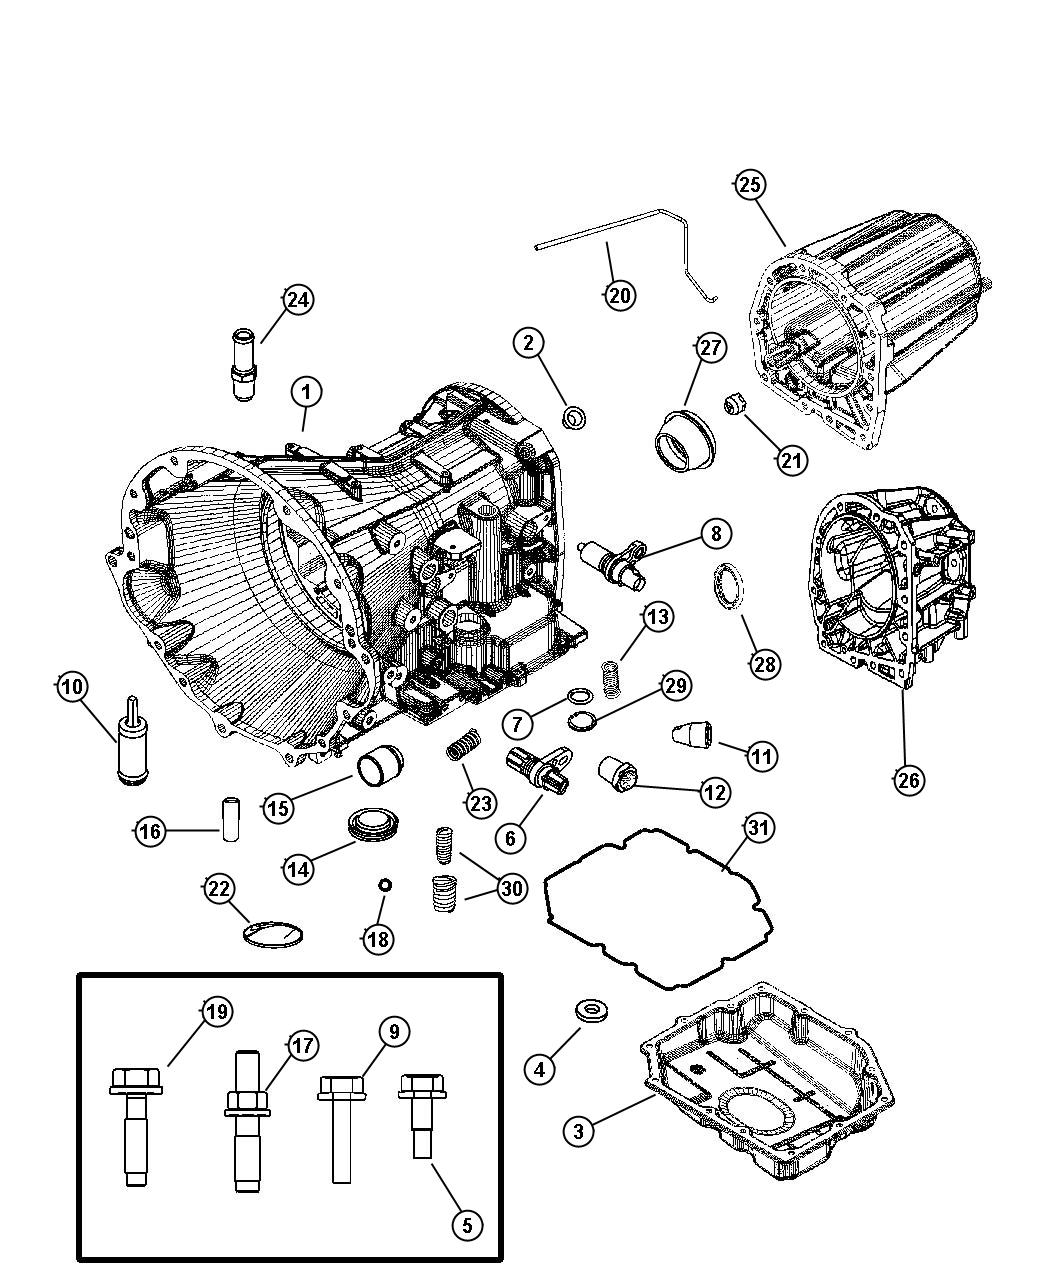 Dodge Ram Quad Cab Radio Wiring Diagram